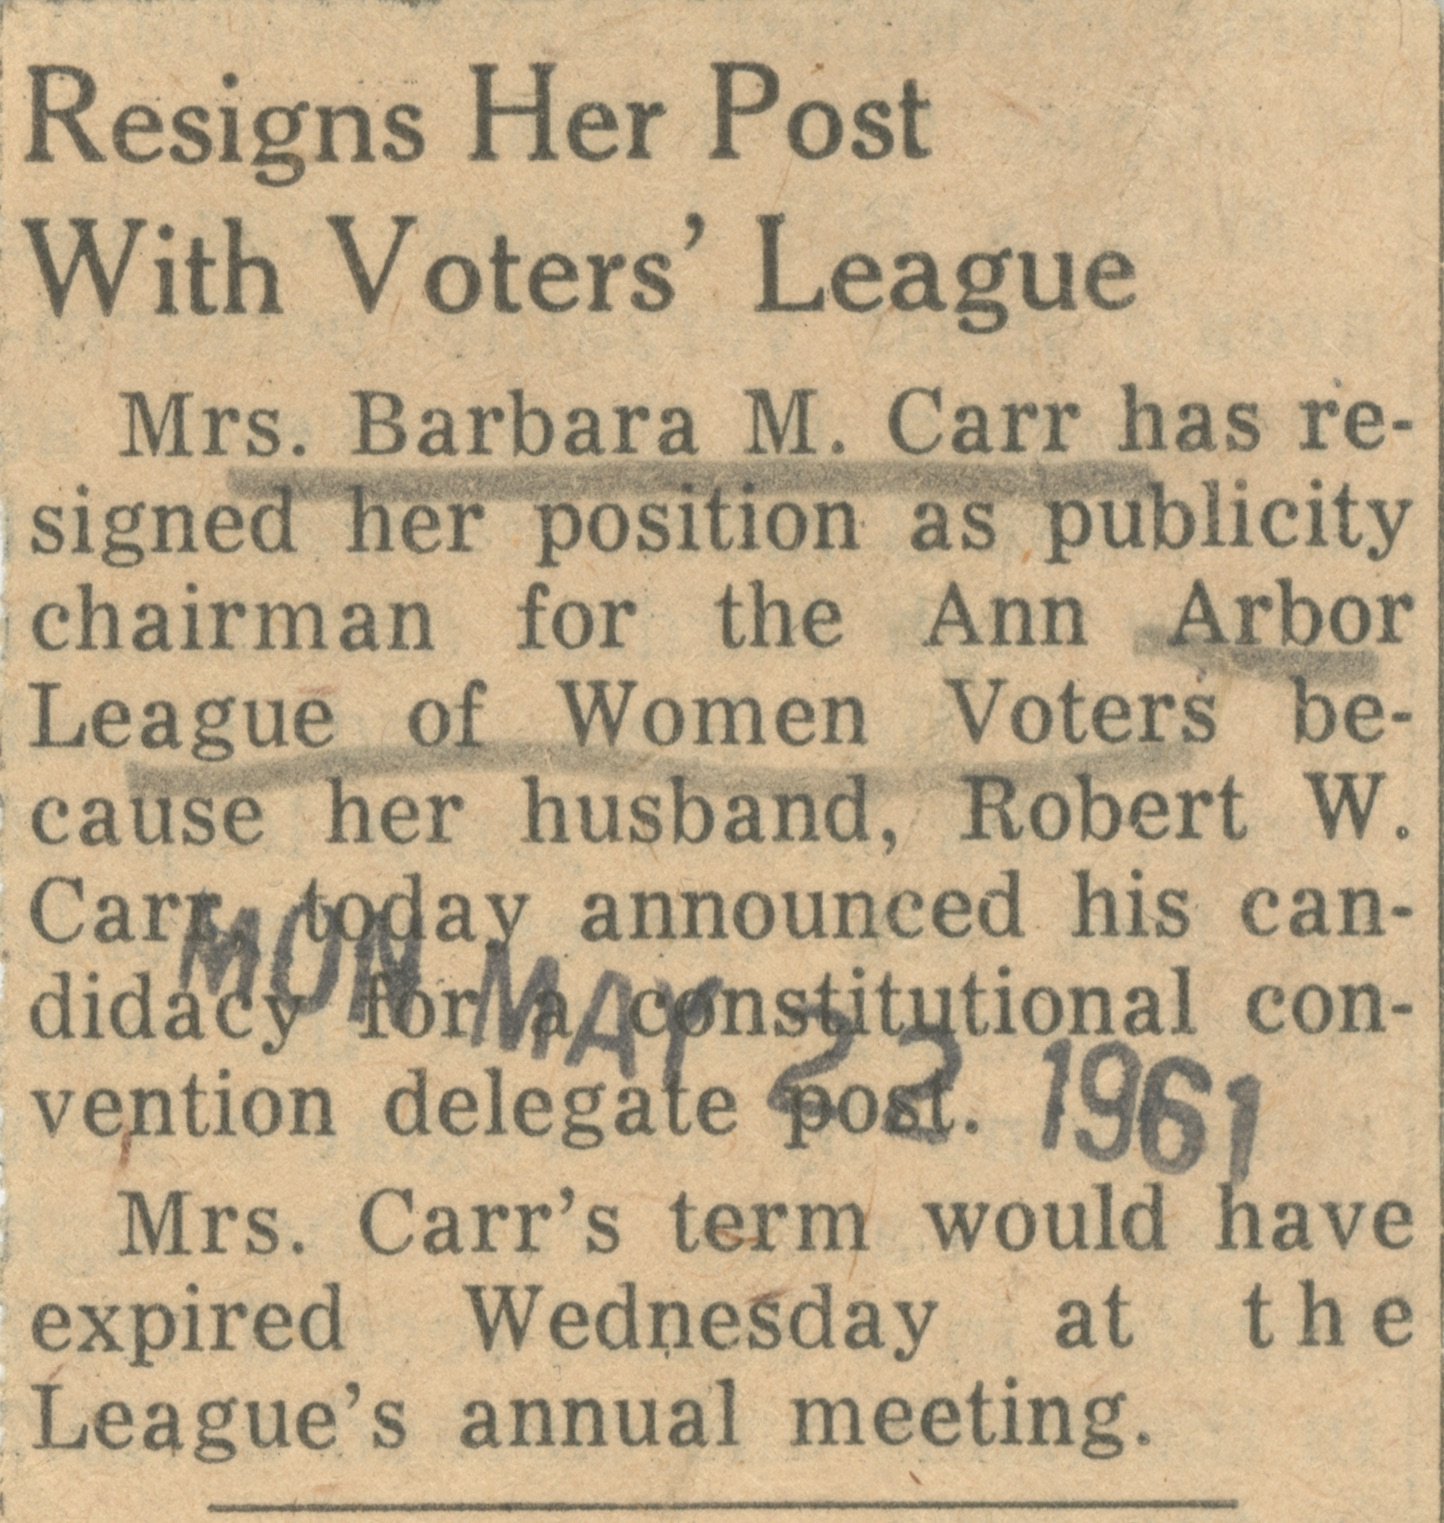 Resigns Her Post With Voters' League image